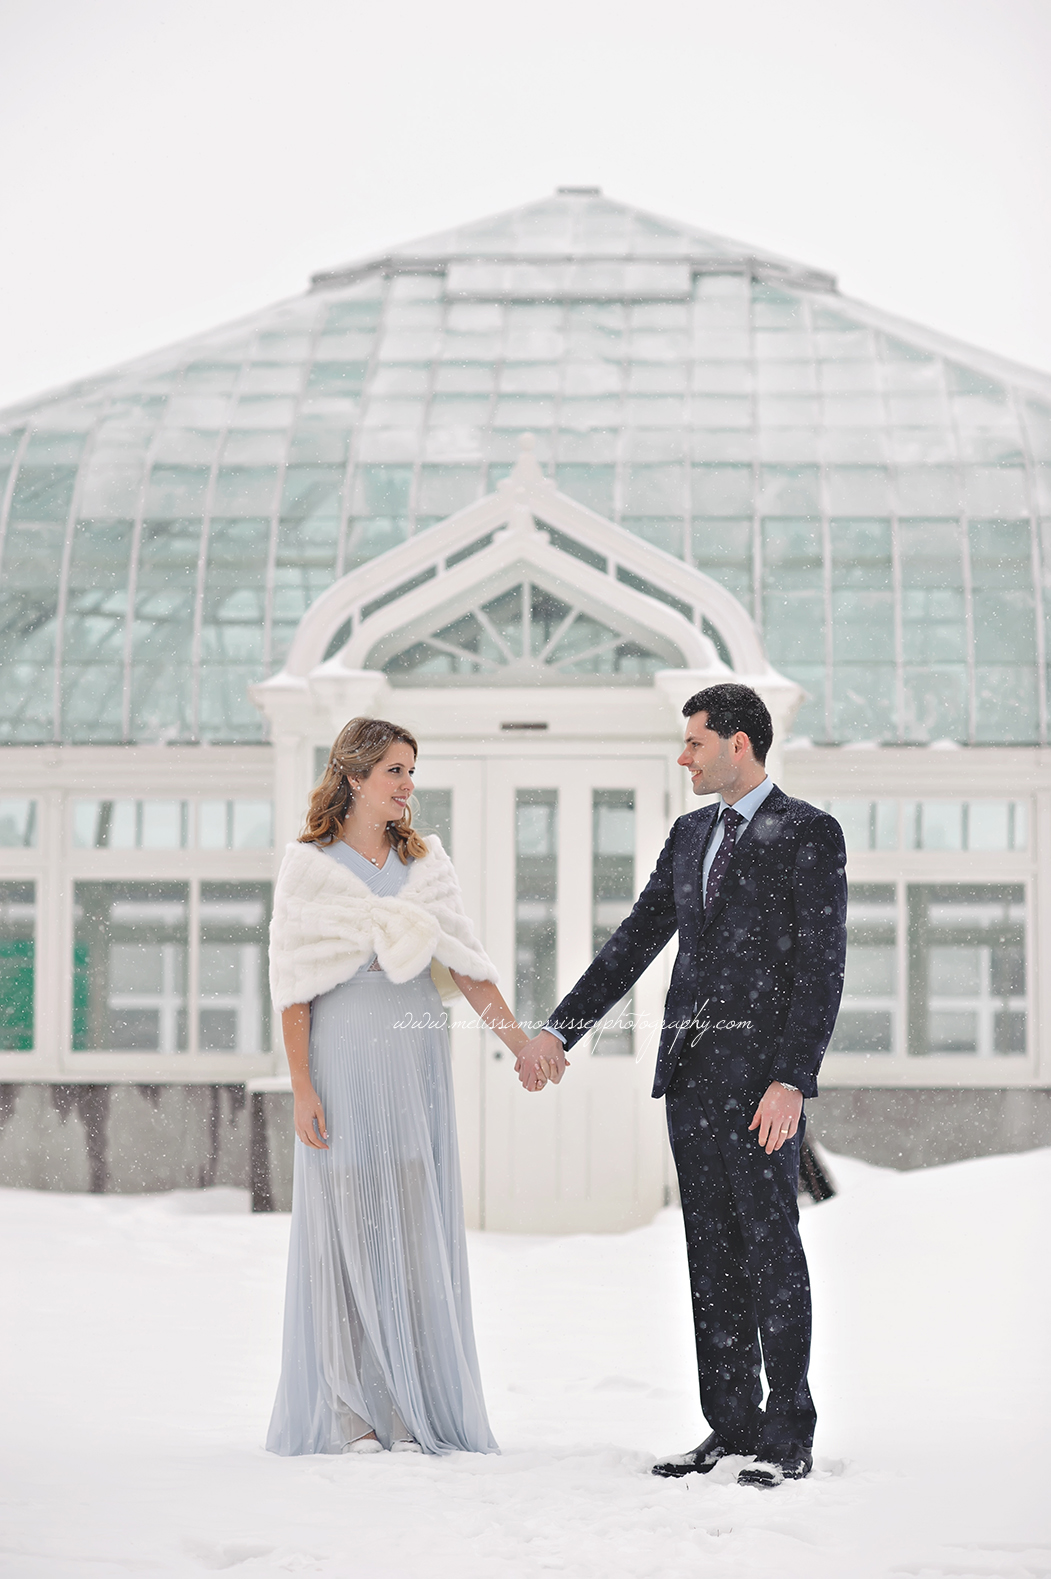 ottawa wedding photographer melissa morrissey01